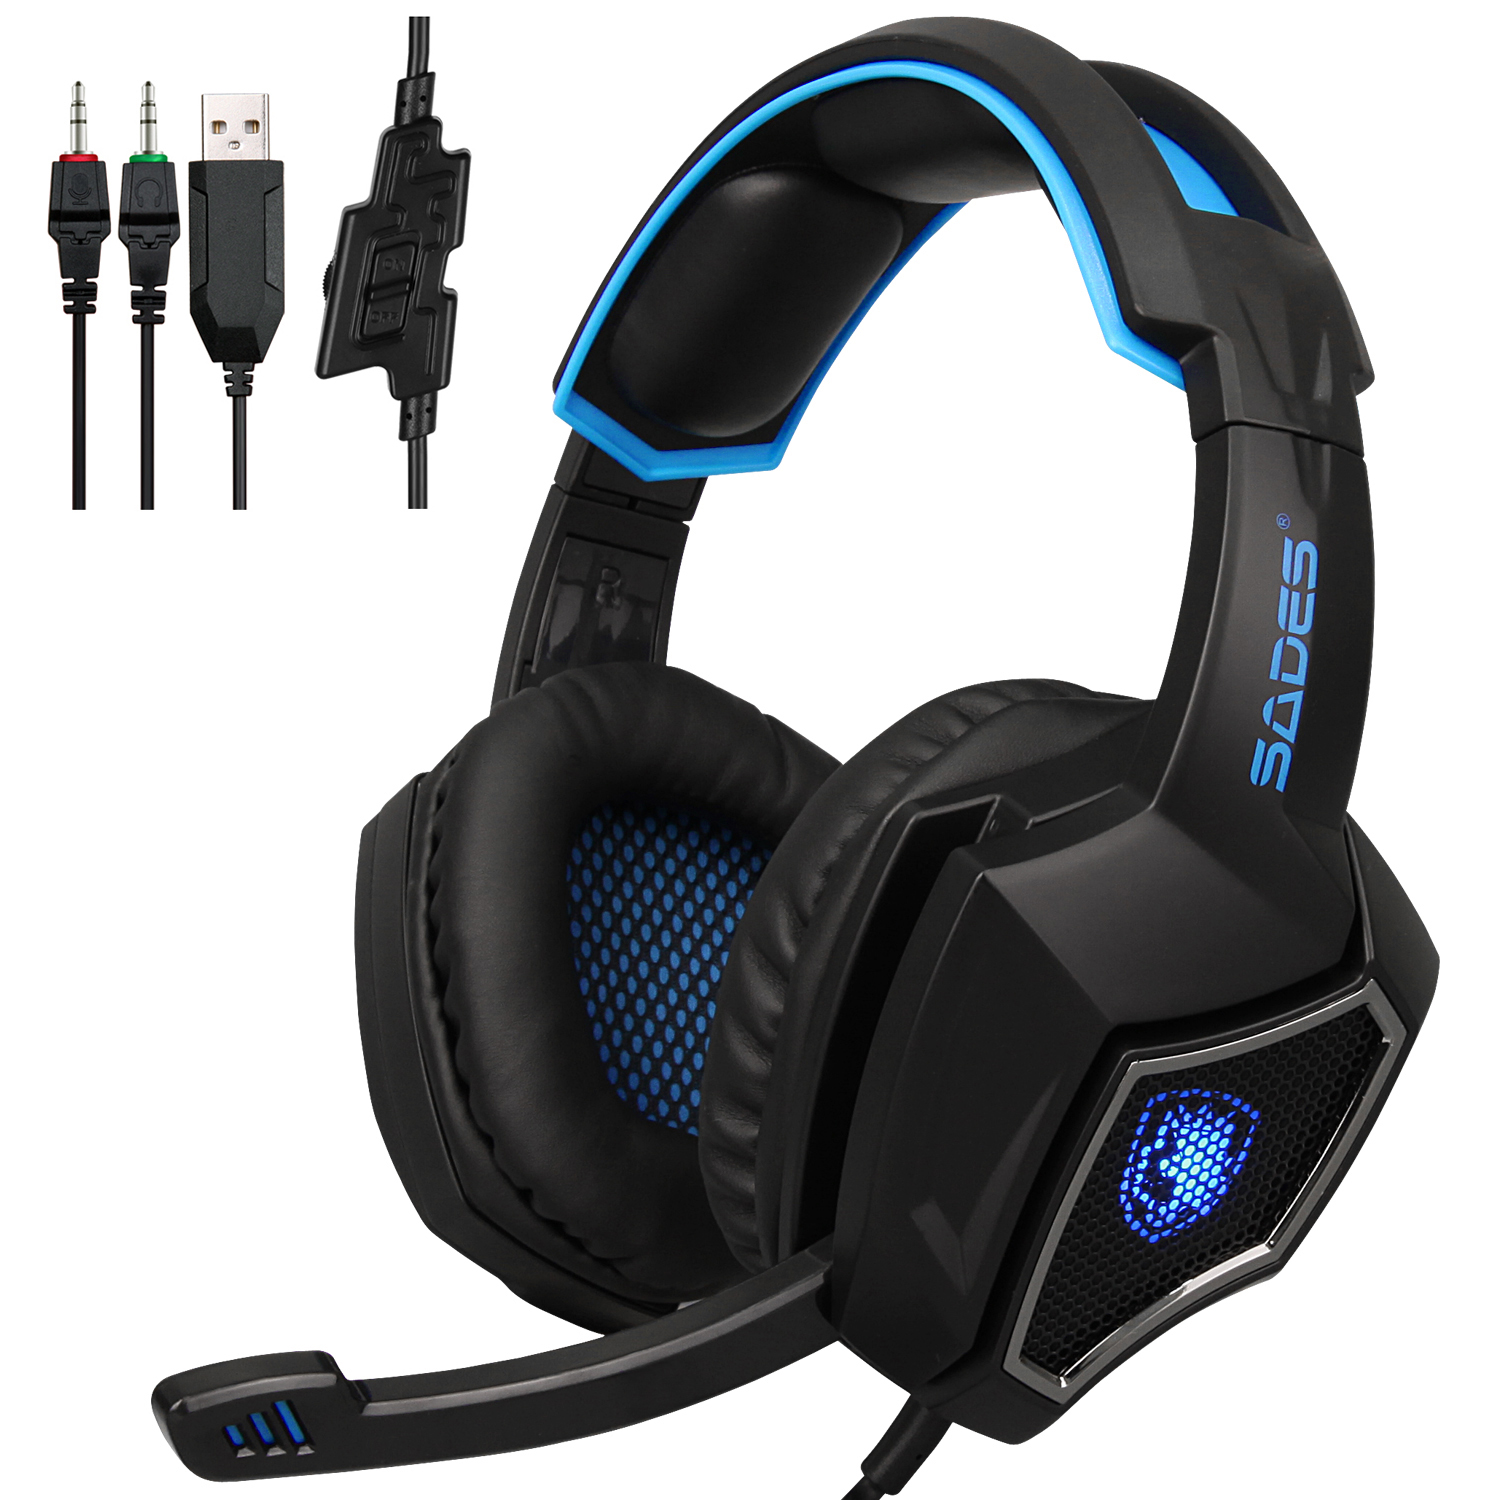 41ce23d50c3 Details about SADES Spirit Wolf 3.5mm Wired Gaming Headset with Mic For PS4  Xbox One PC Laptop